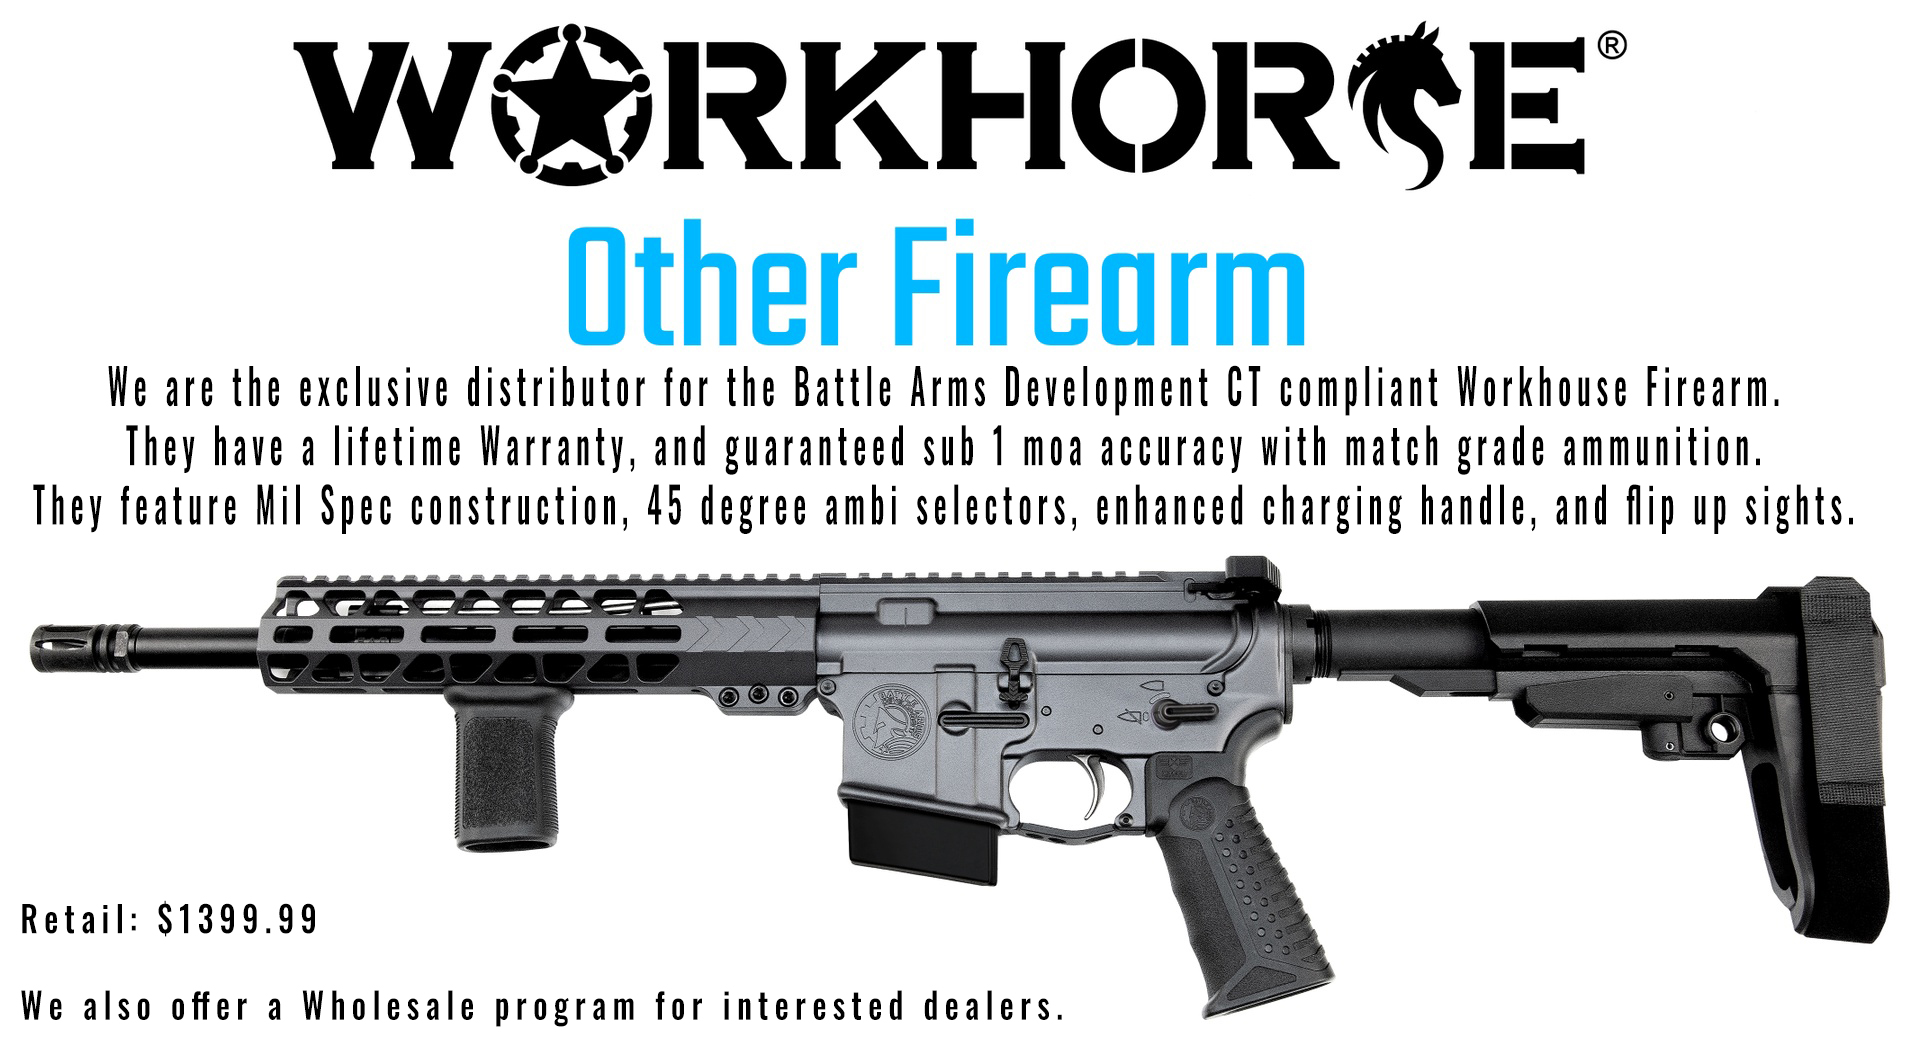 Workhorse-Other